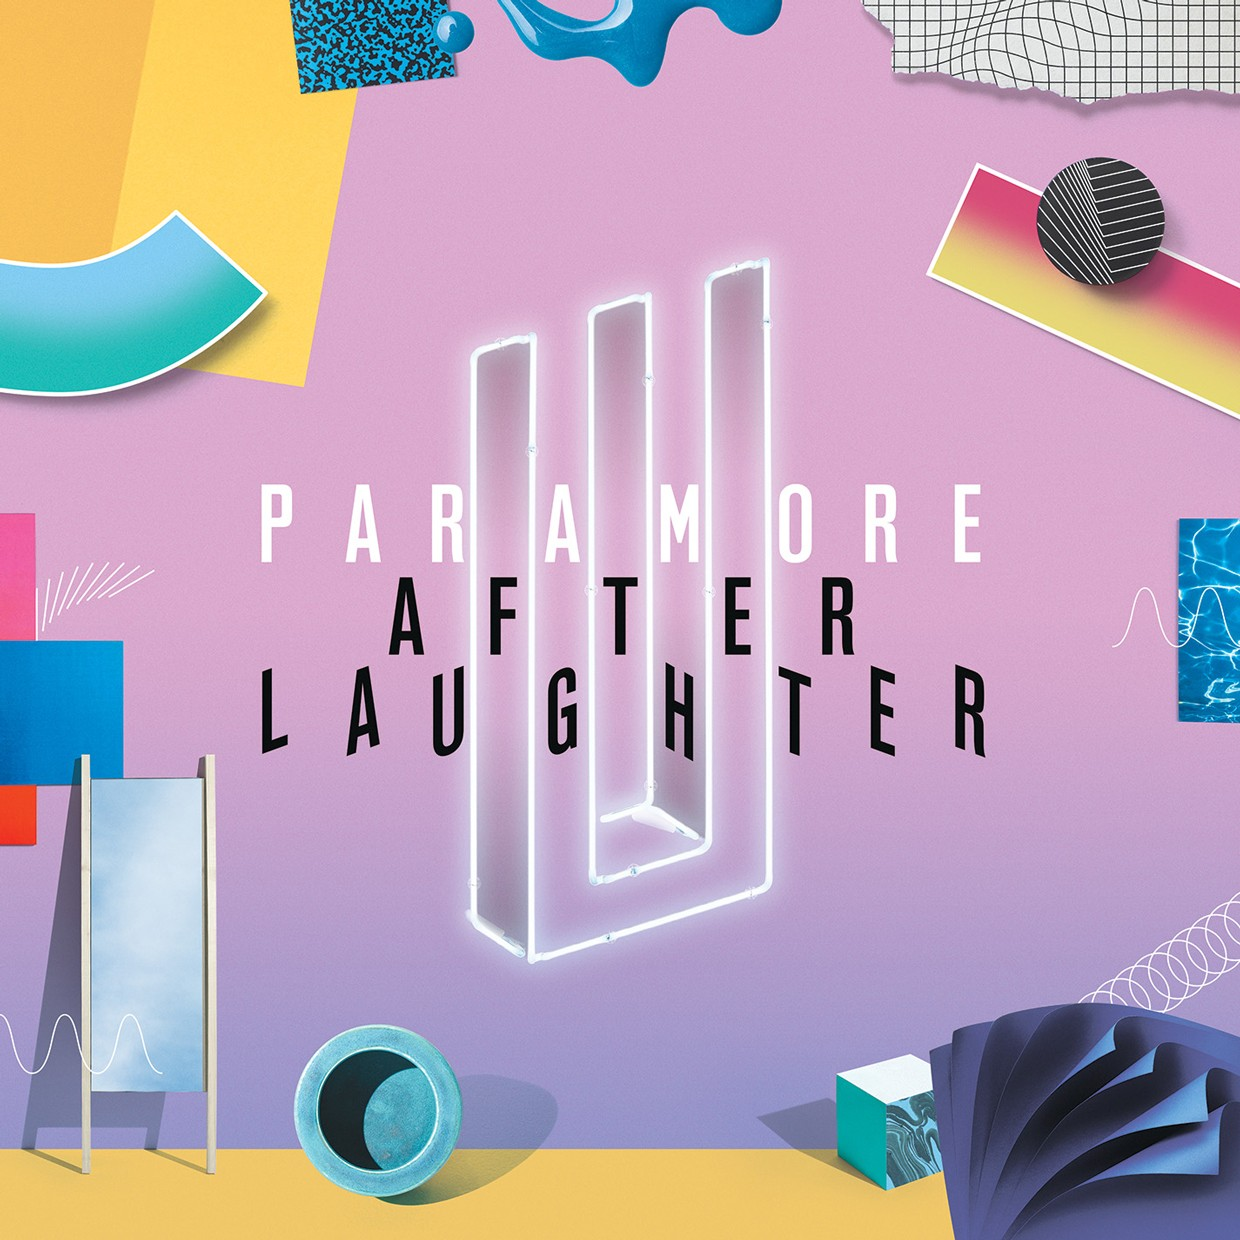 Paramore - After Laughter Vinyl LP